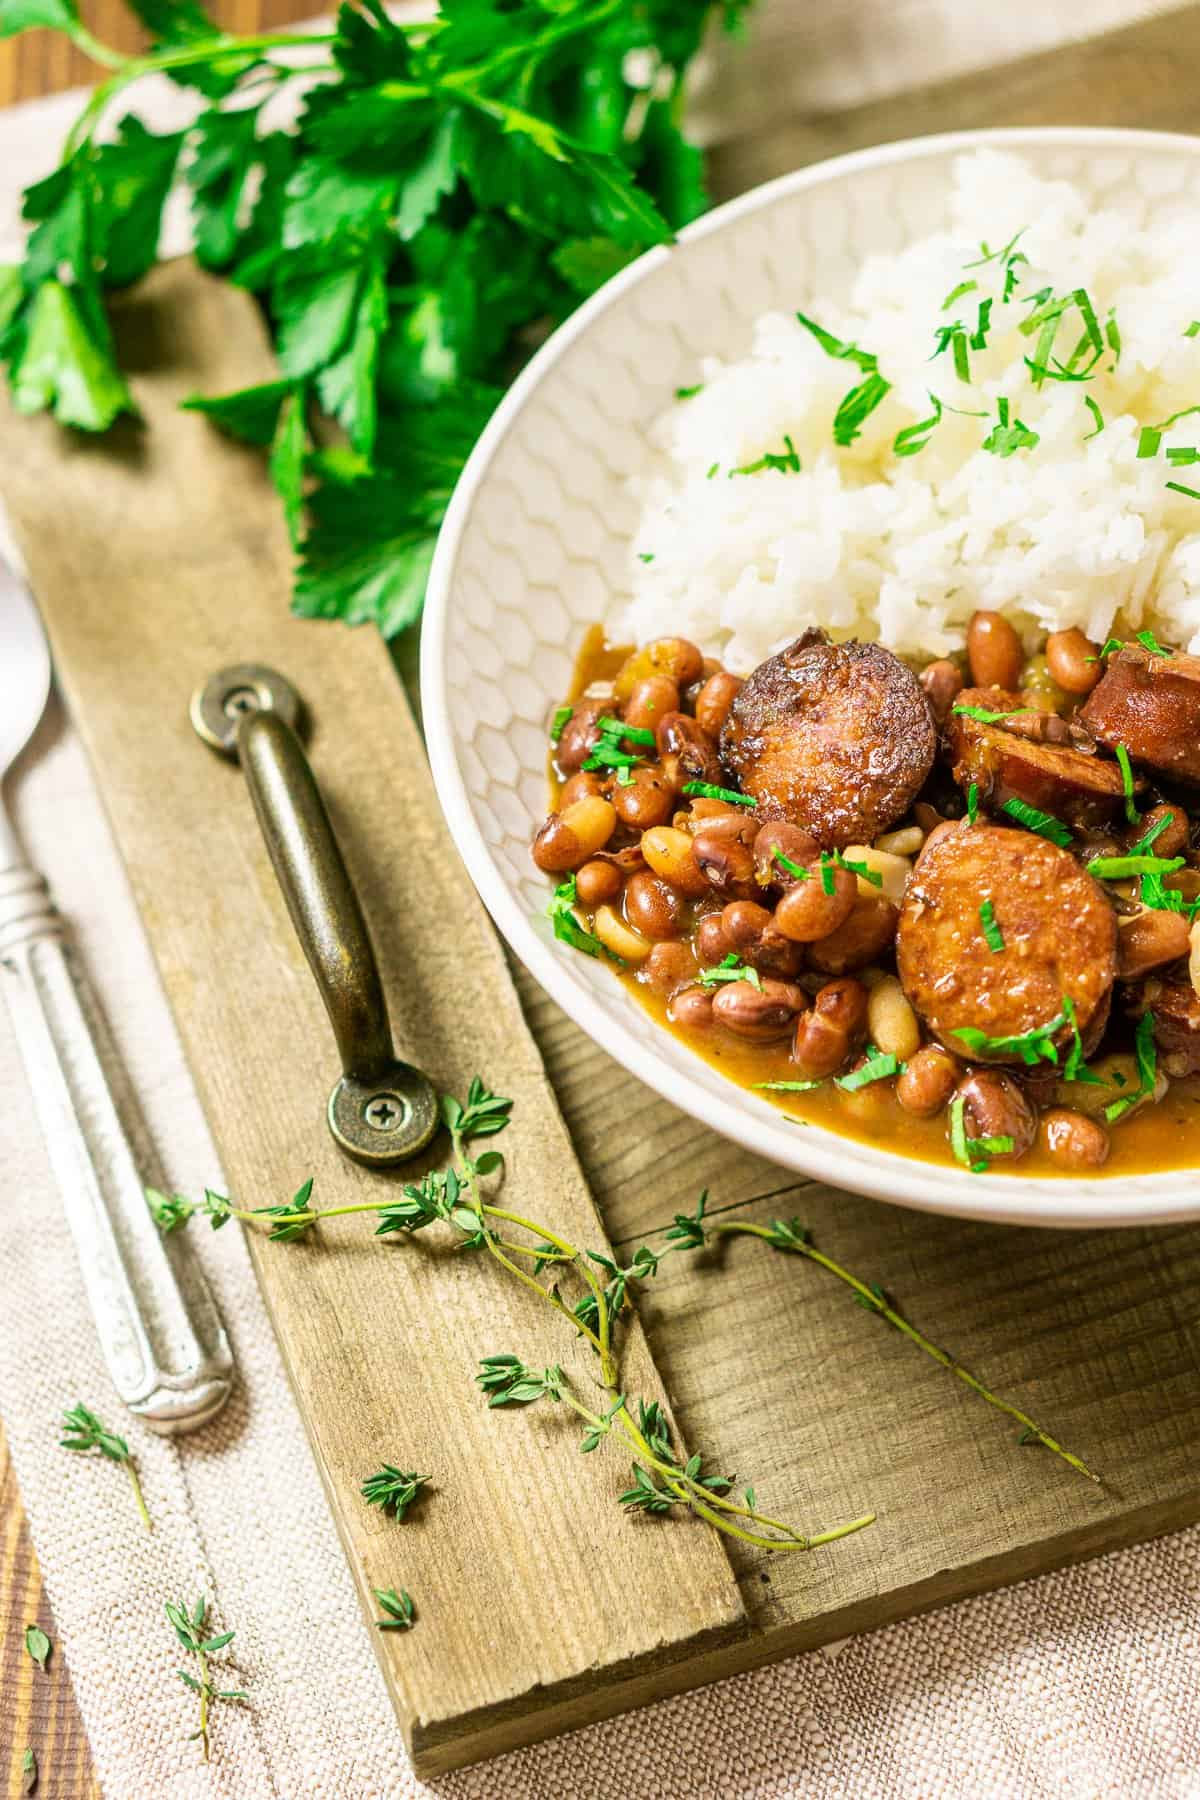 Looking down at a bowl of Instant Pot red beans and rice on a wooden tray with thyme and parsley around it.